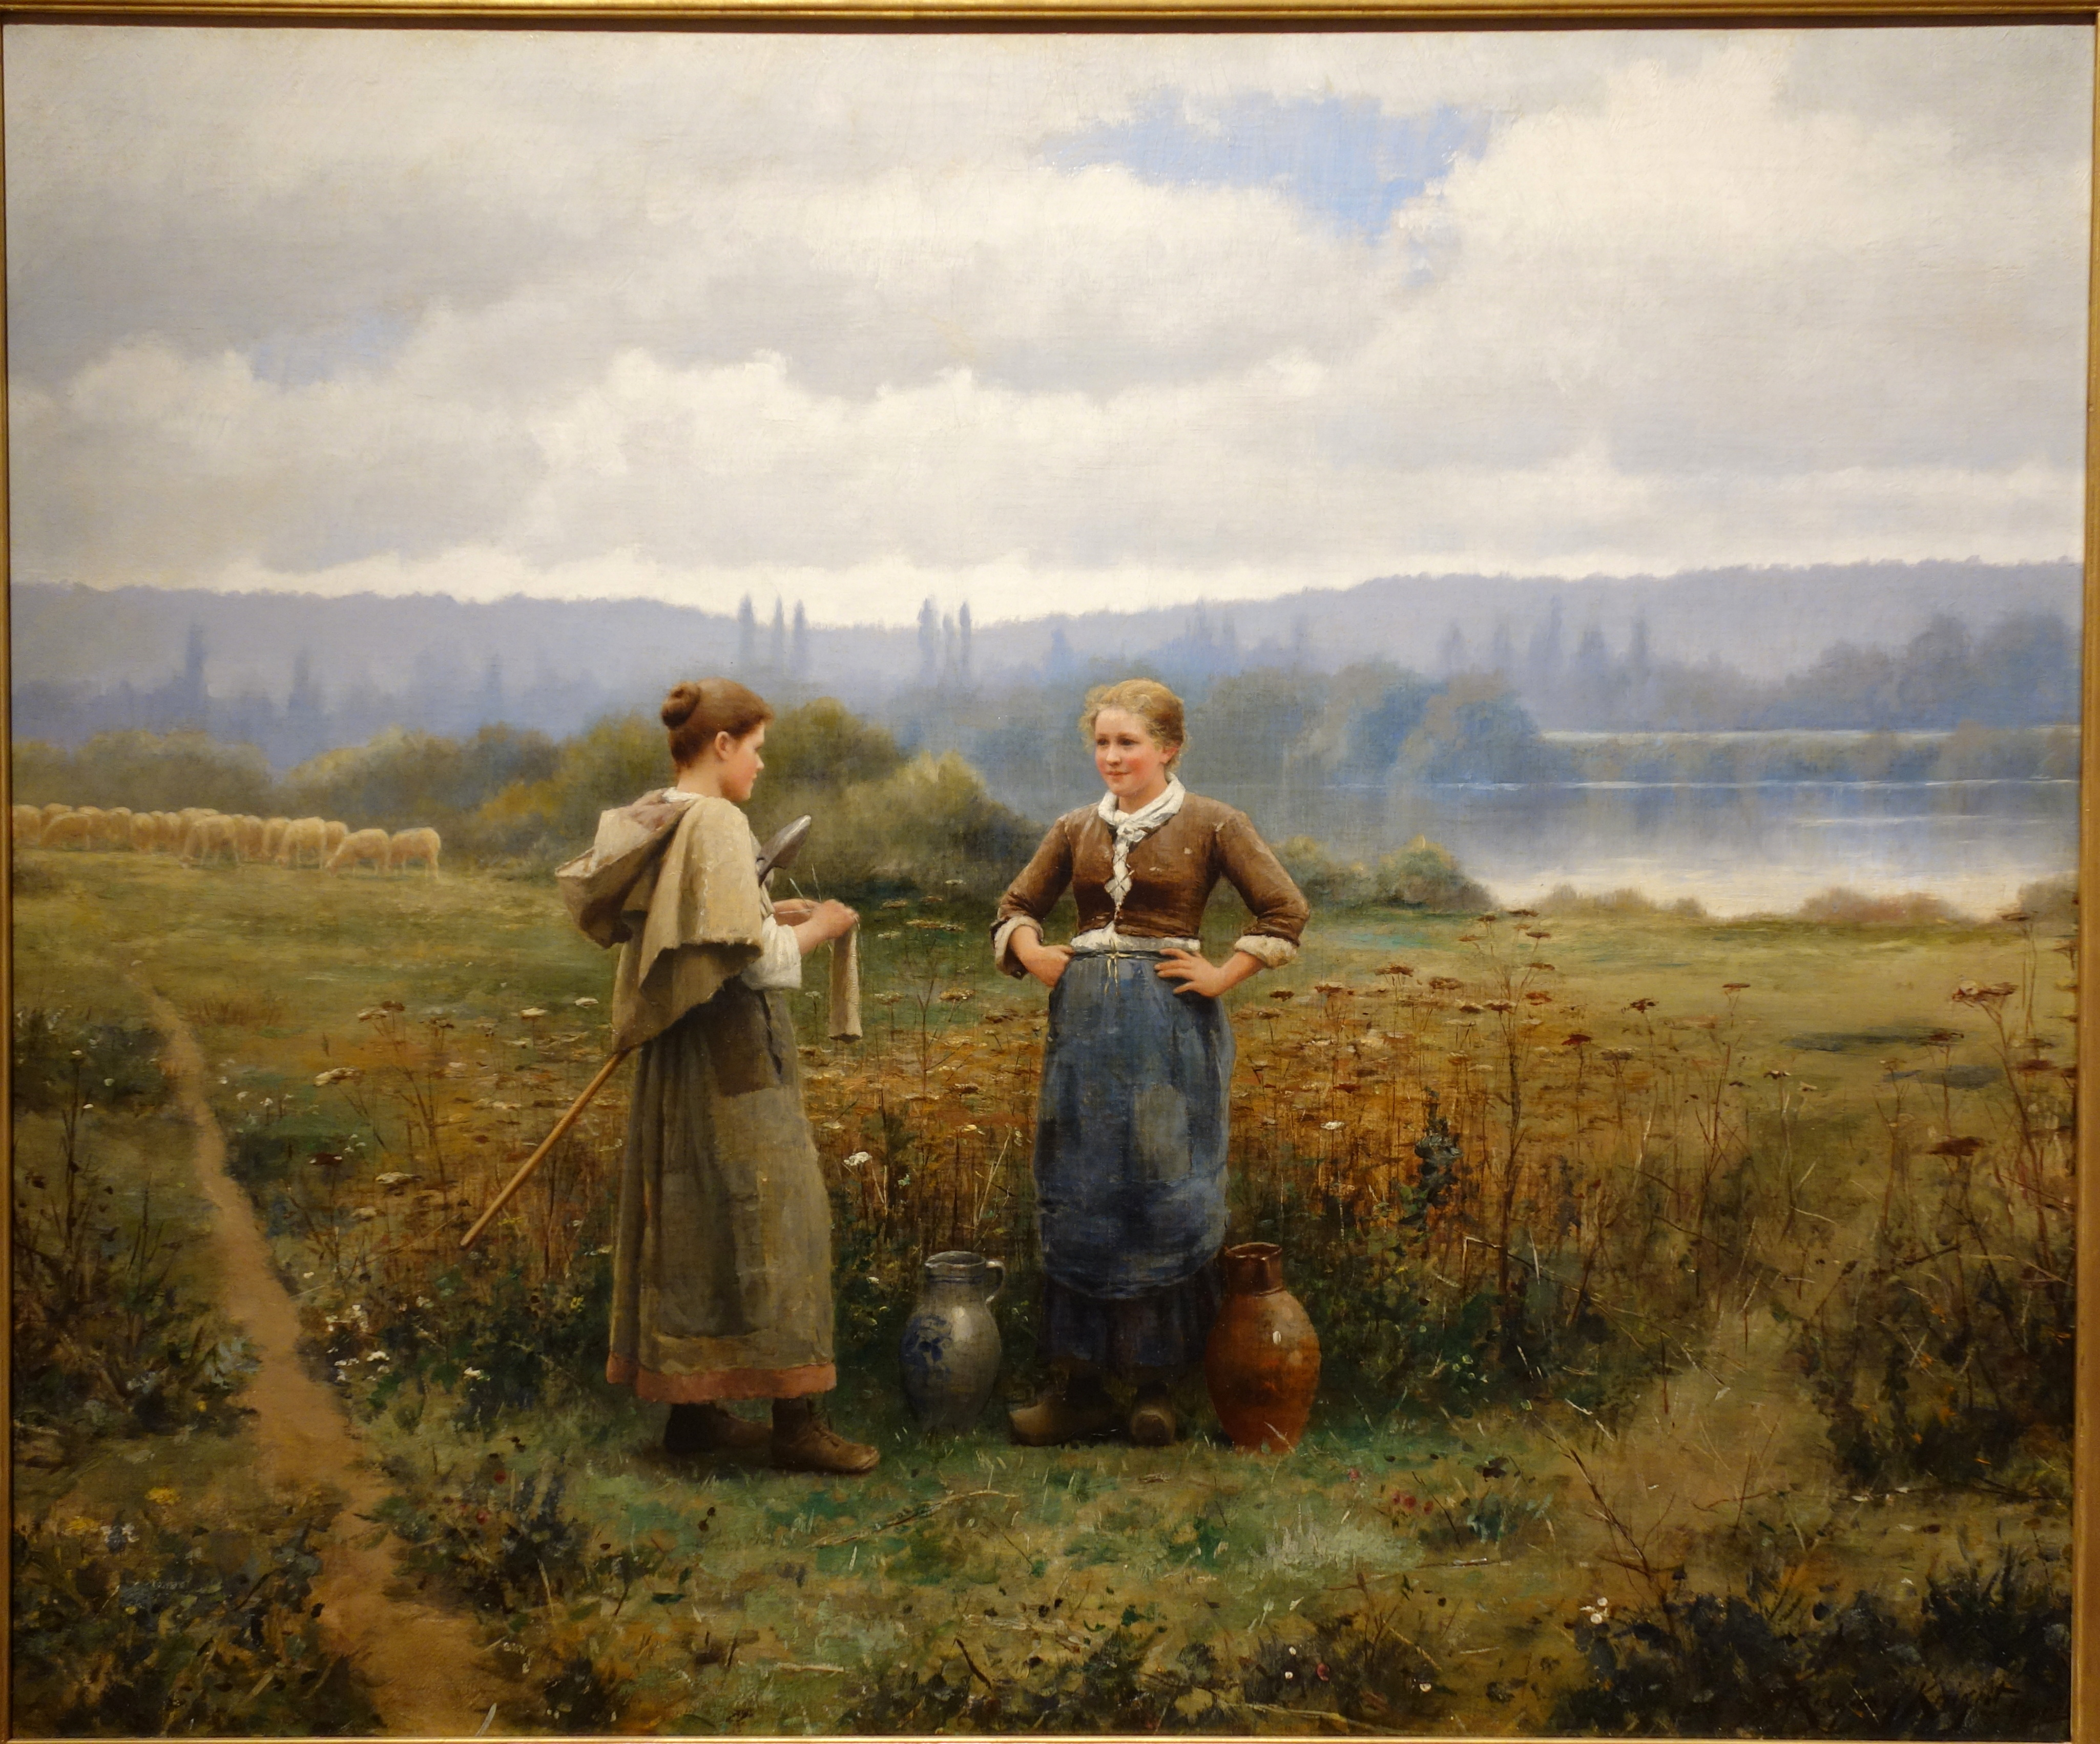 File:The Meeting by Daniel Ridgway Knight, c. 1888, oil on